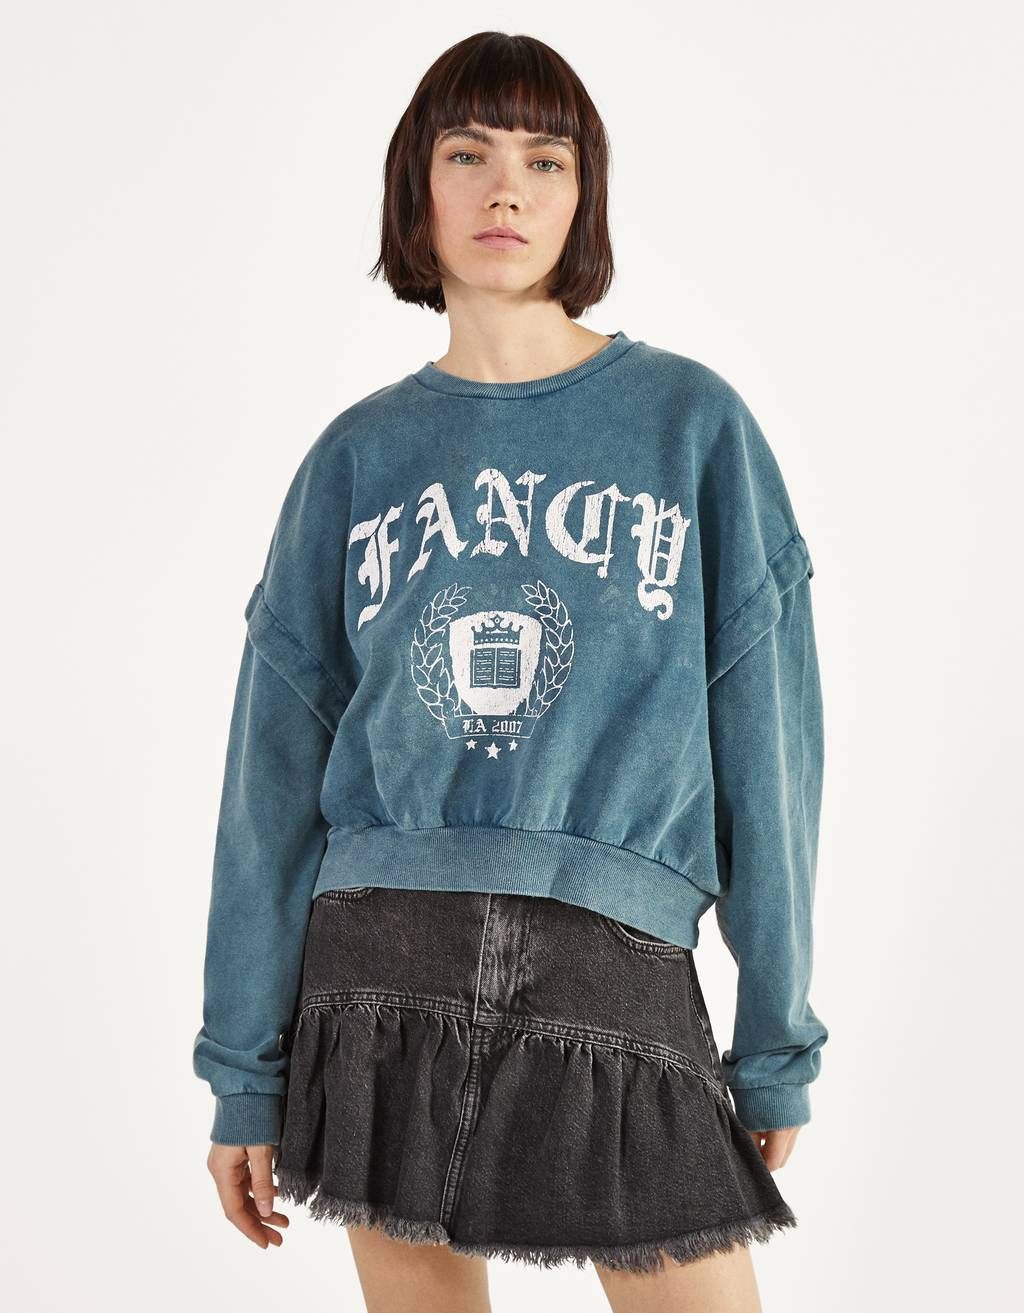 Acid-Wash-Sweatshirt mit Print